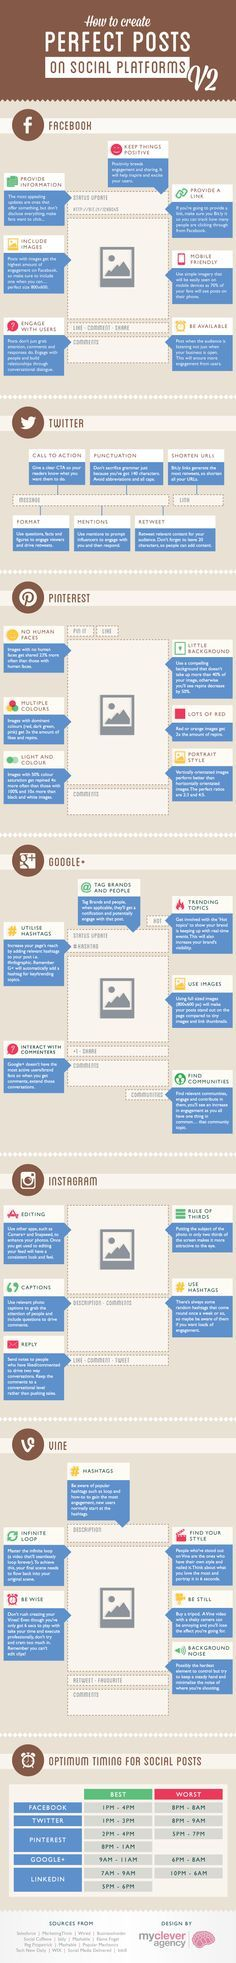 How to plan and create your posts for social media